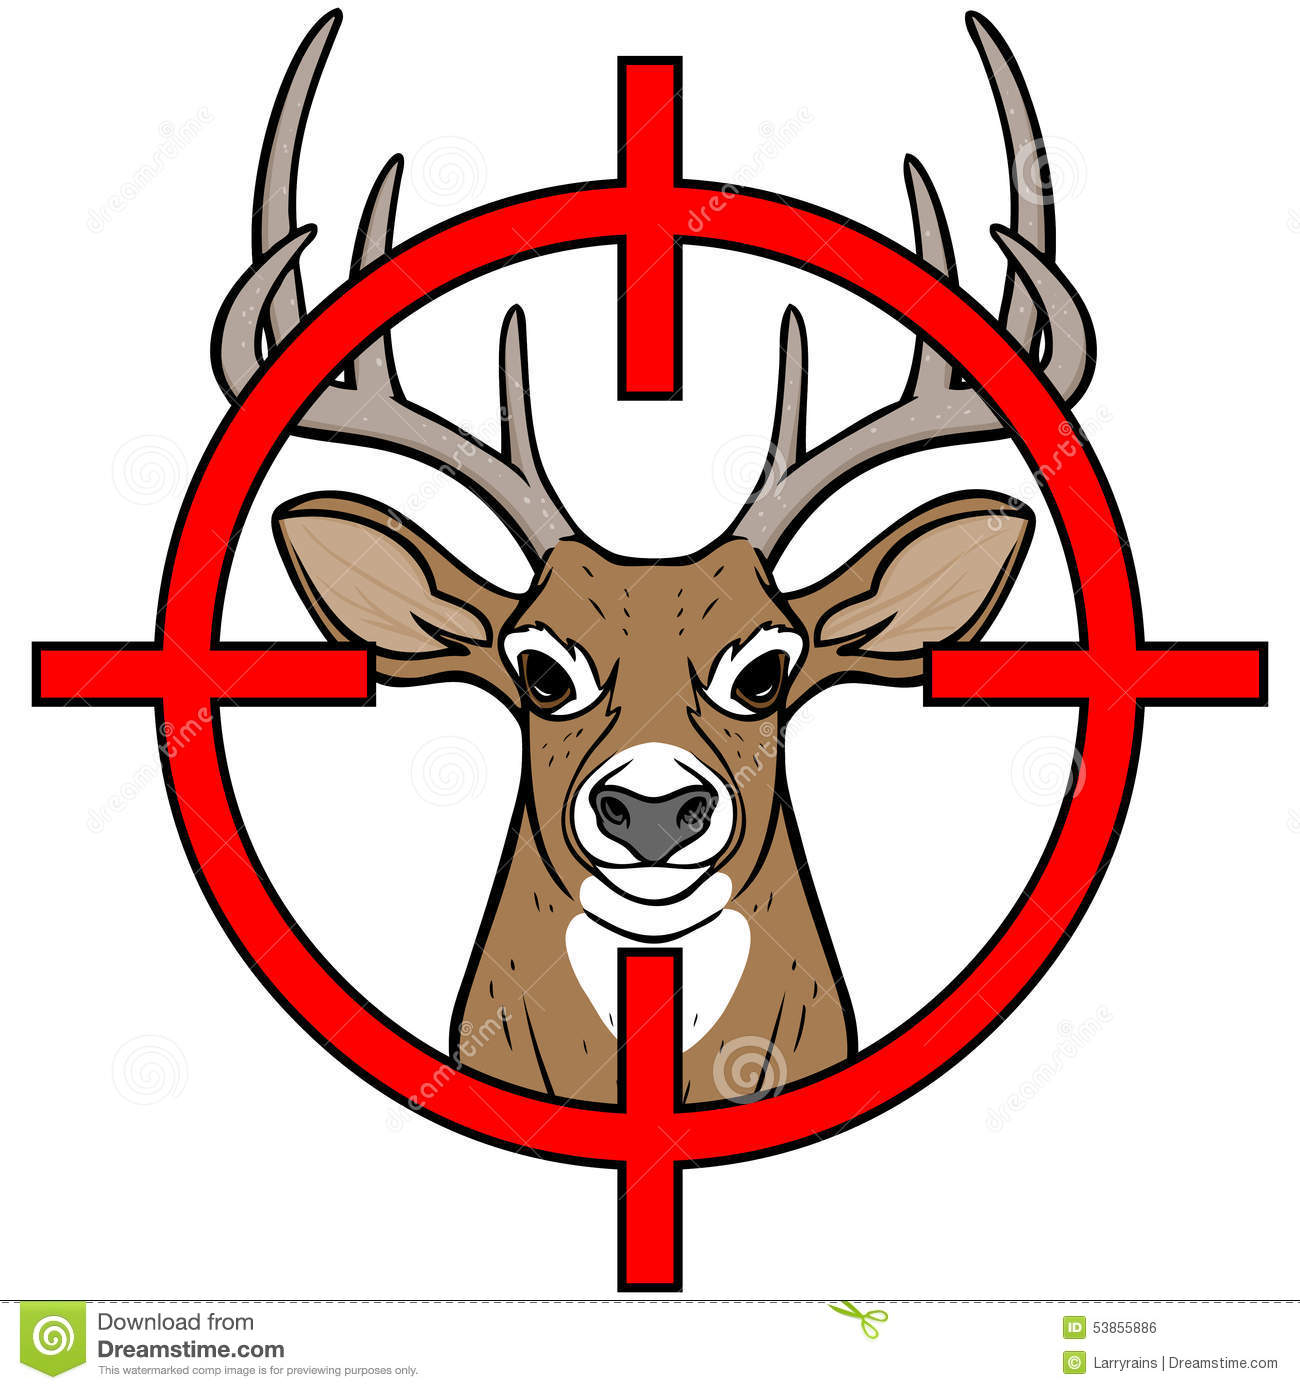 Deer Hunting Royalty Free .-Deer Hunting Royalty Free .-11